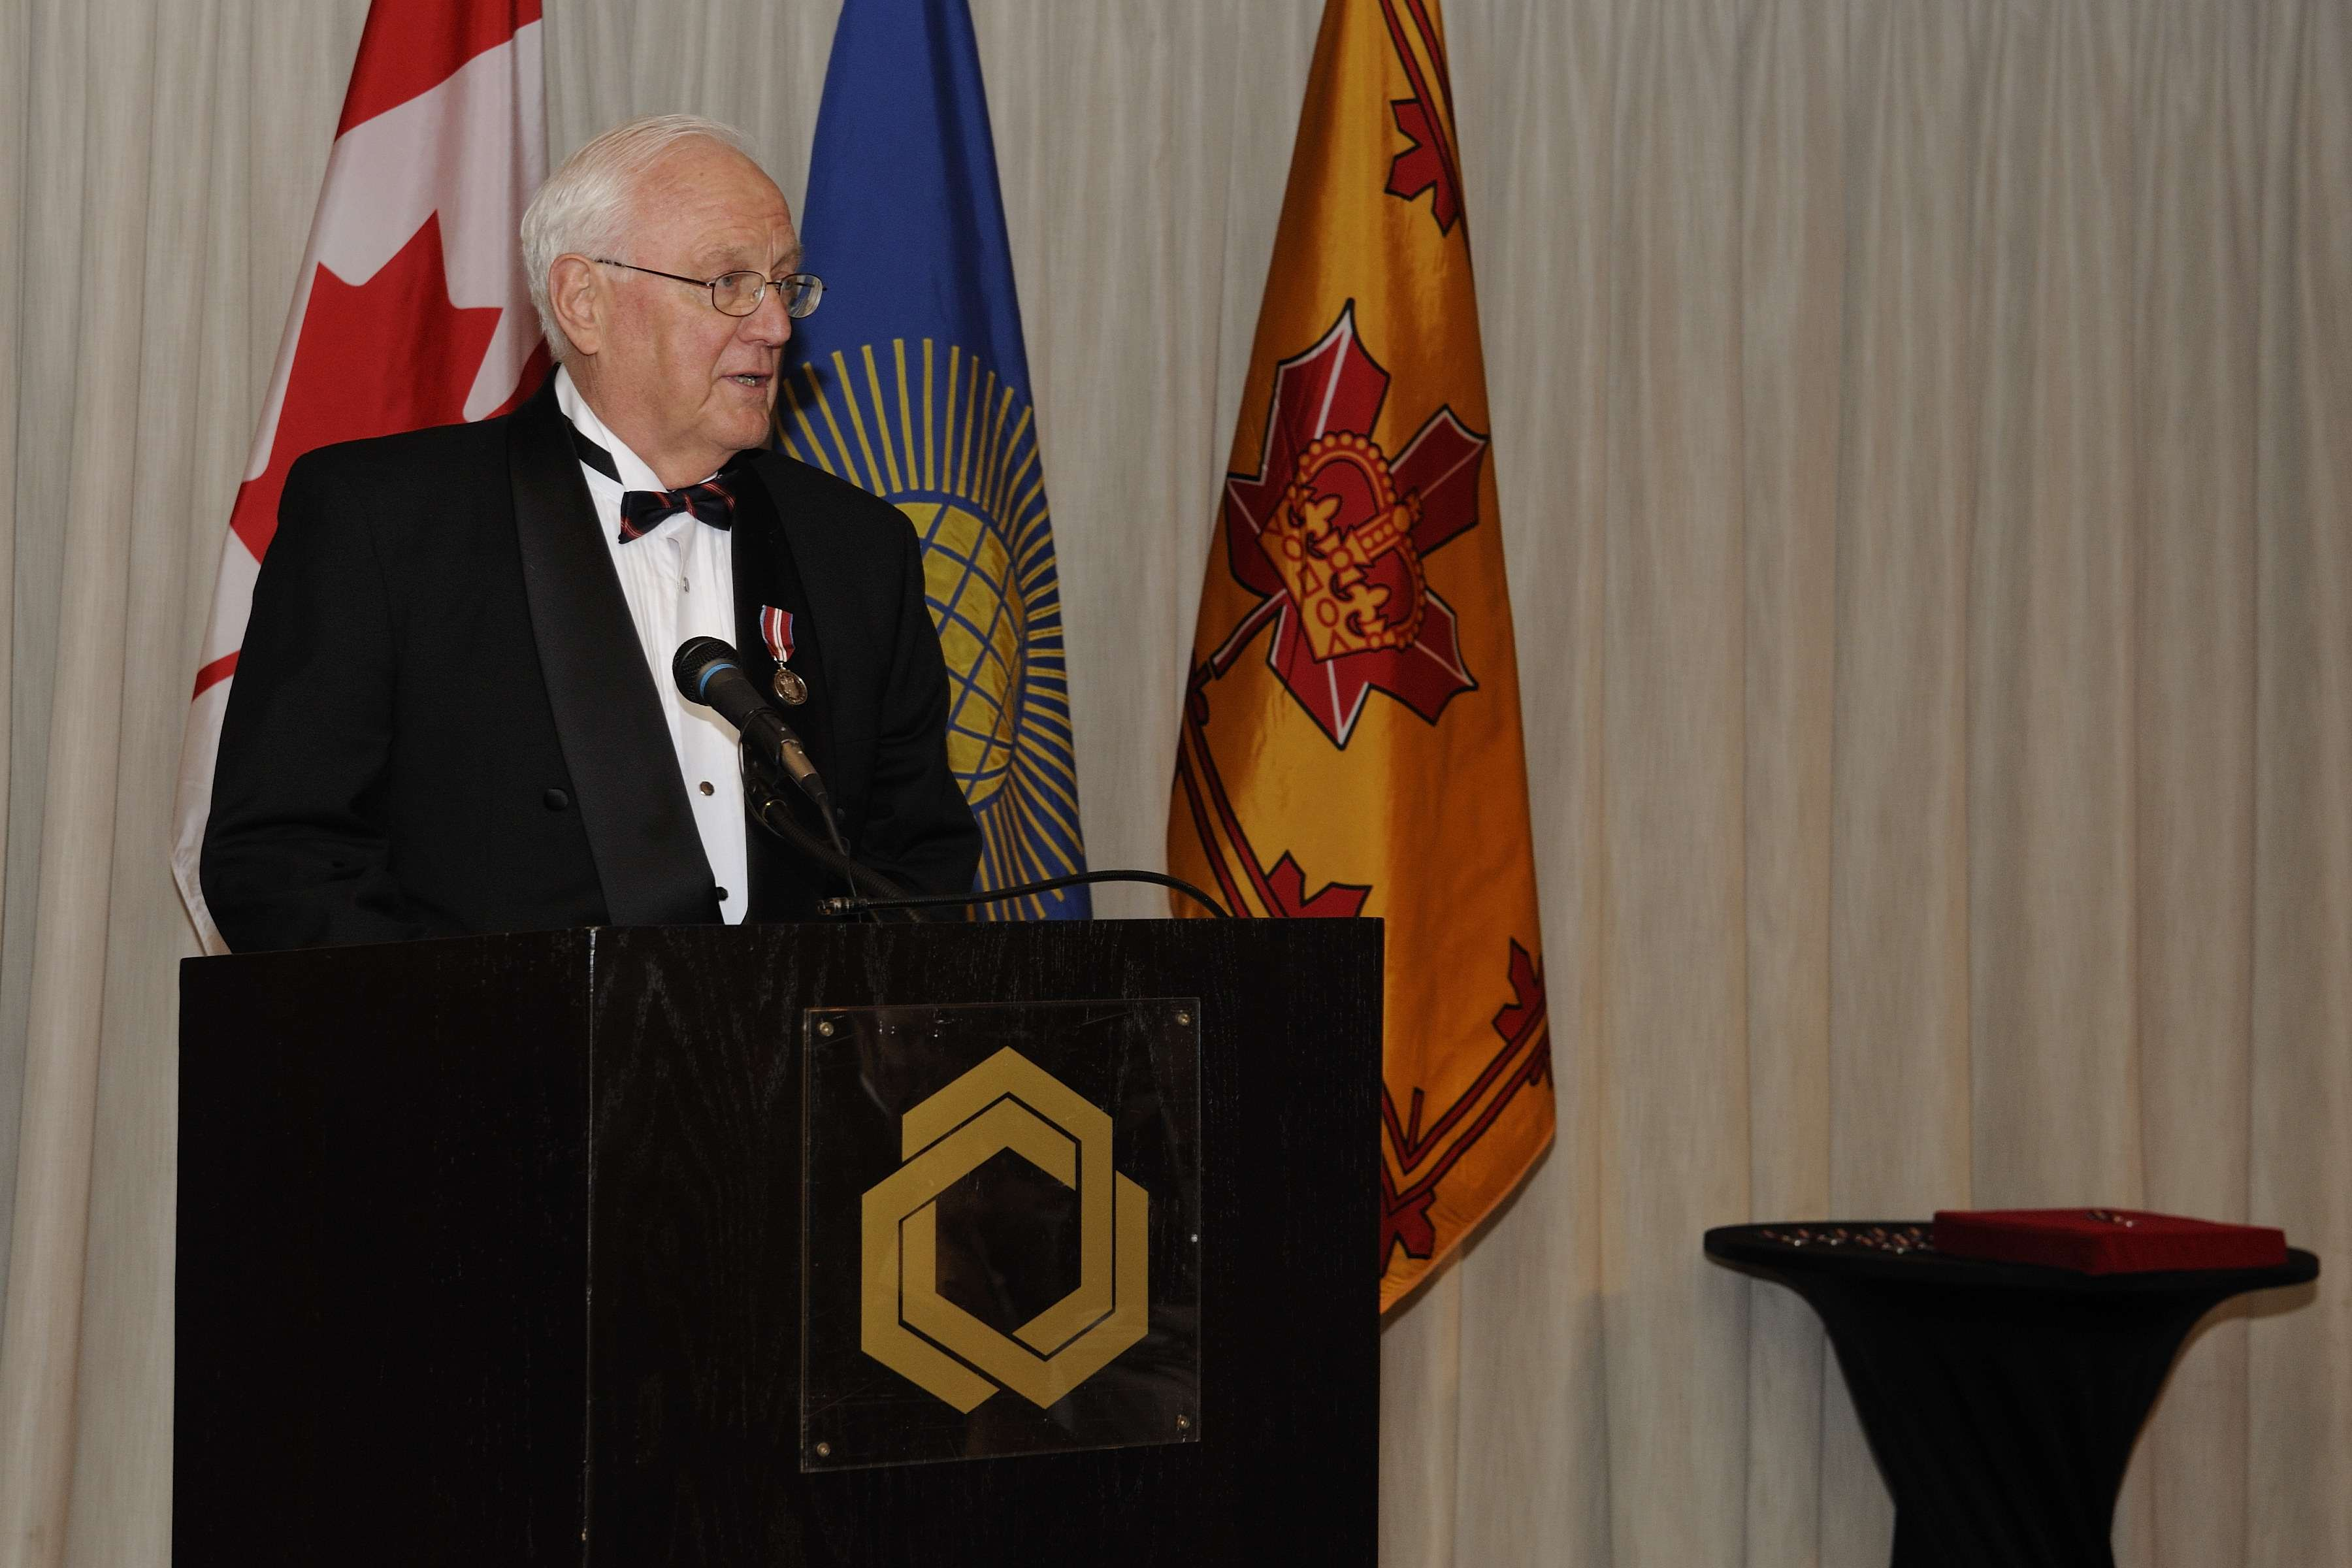 The event was co-hosted by the Royal Commonwealth Society and the Monarchist League of Canada (Ottawa Branch). Dr. Peter Meincke, President of the Ottawa Branch of the Royal Commonwealth Society of Canada, introduced the Governor General before he delivered remarks.